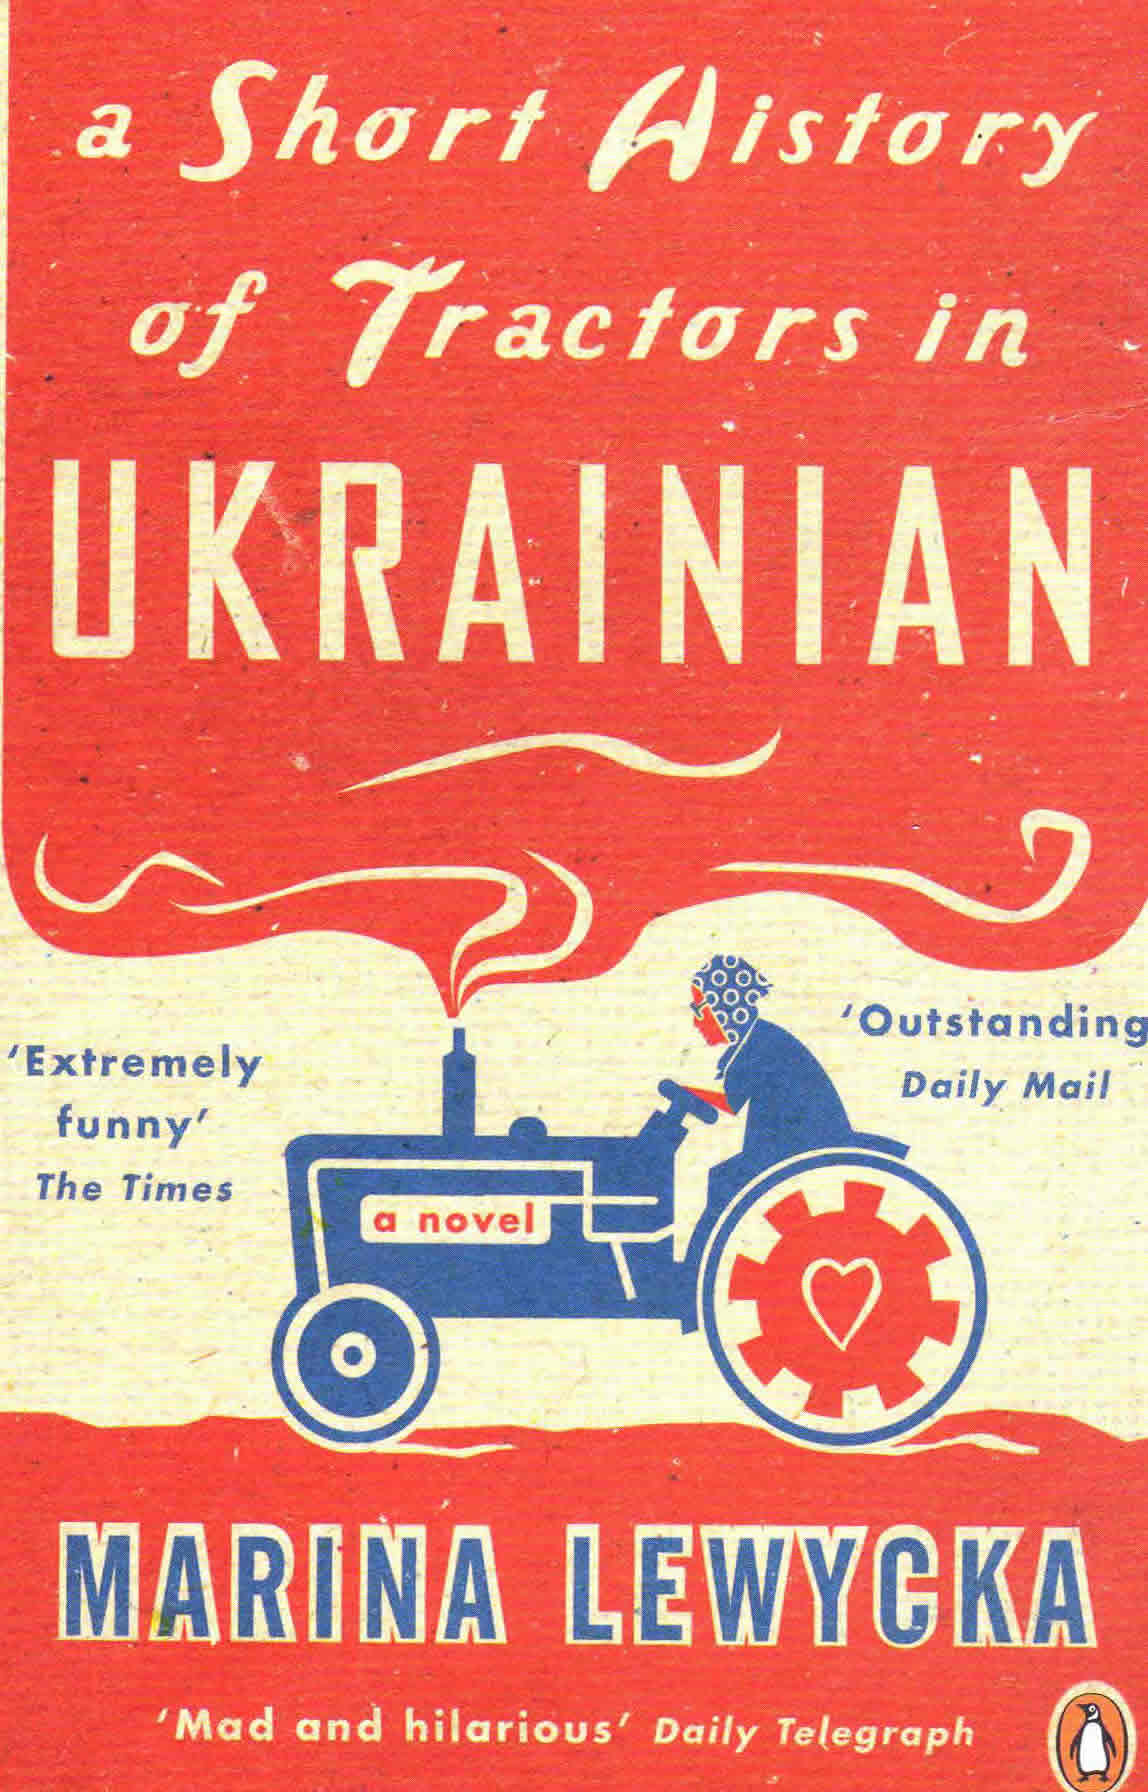 2006-09-17-a-short-history-of-tractors-in-ukrainian-by-marina-lewycka